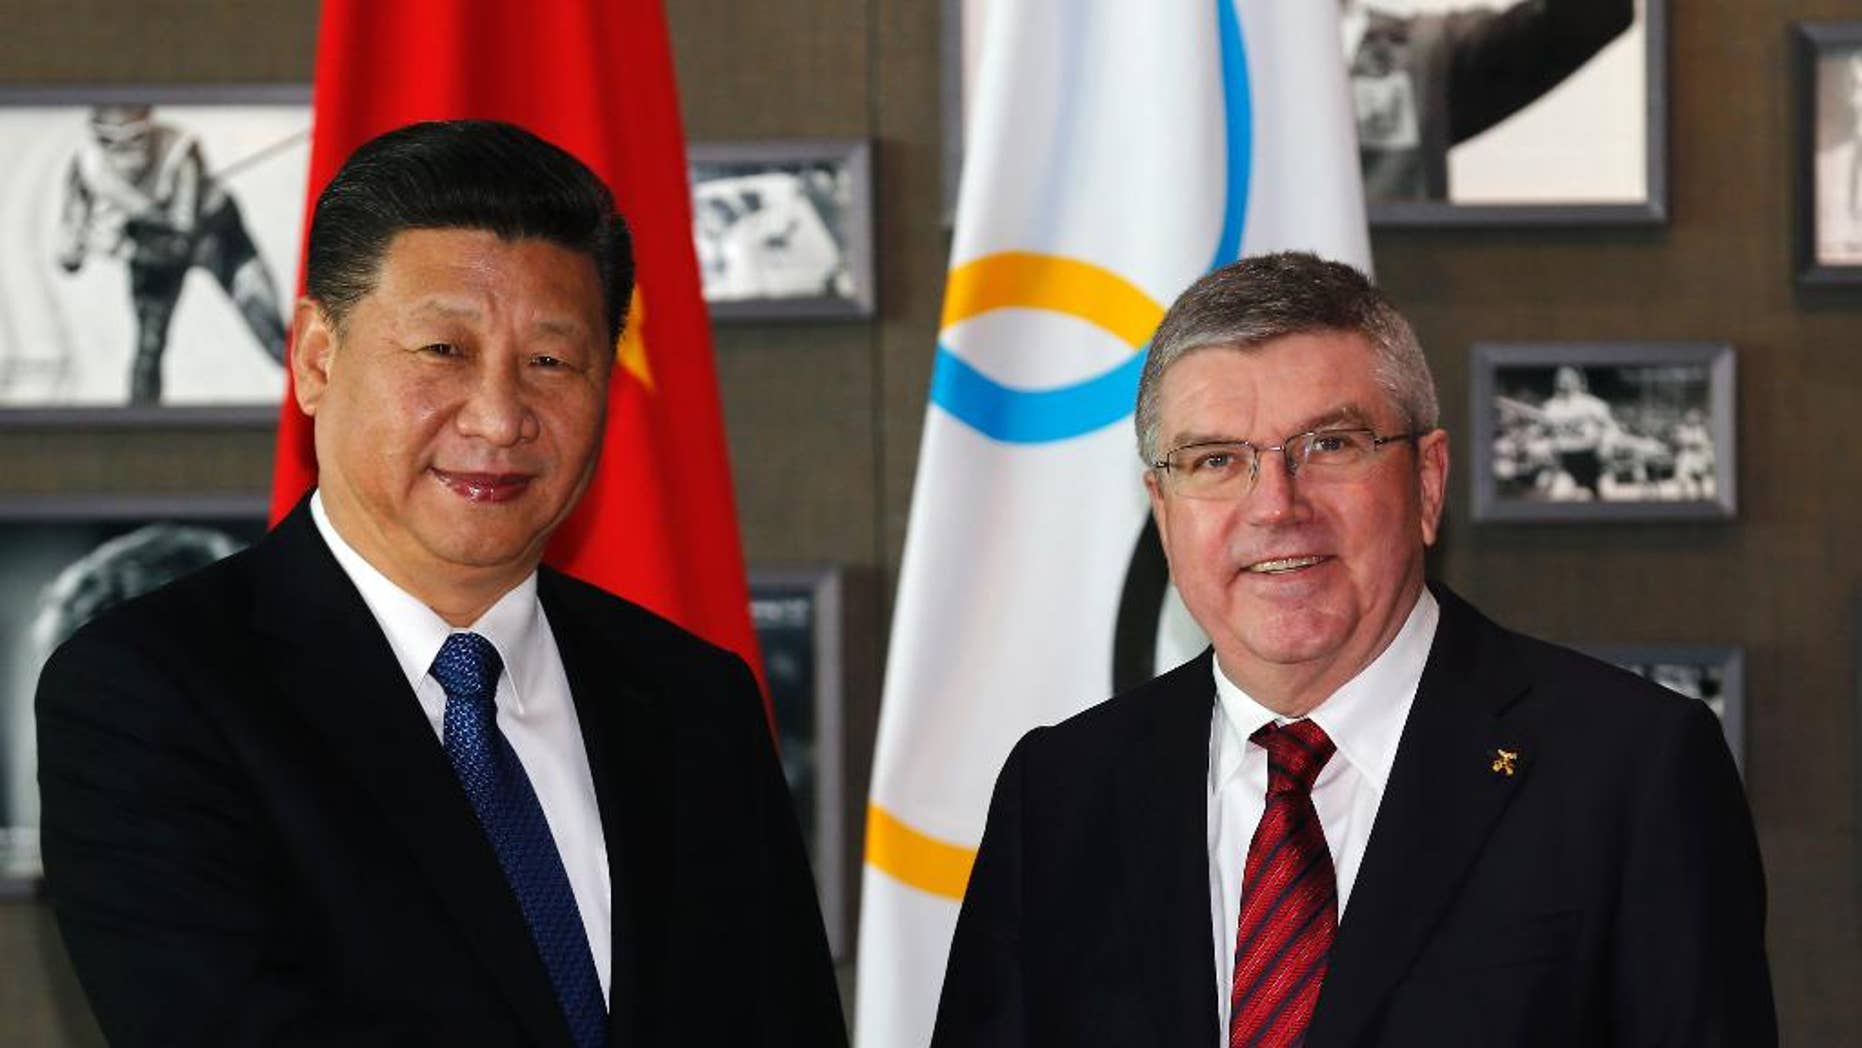 Chinese President Xi Jinping, left, shakes hand with International Olympic Committee, IOC, President Thomas Bach, right, before a meeting at the Olympic Museum in Lausanne, Switzerland, Wednesday, Jan. 18, 2017. (Denis Balibouse/Pool Photo via AP)